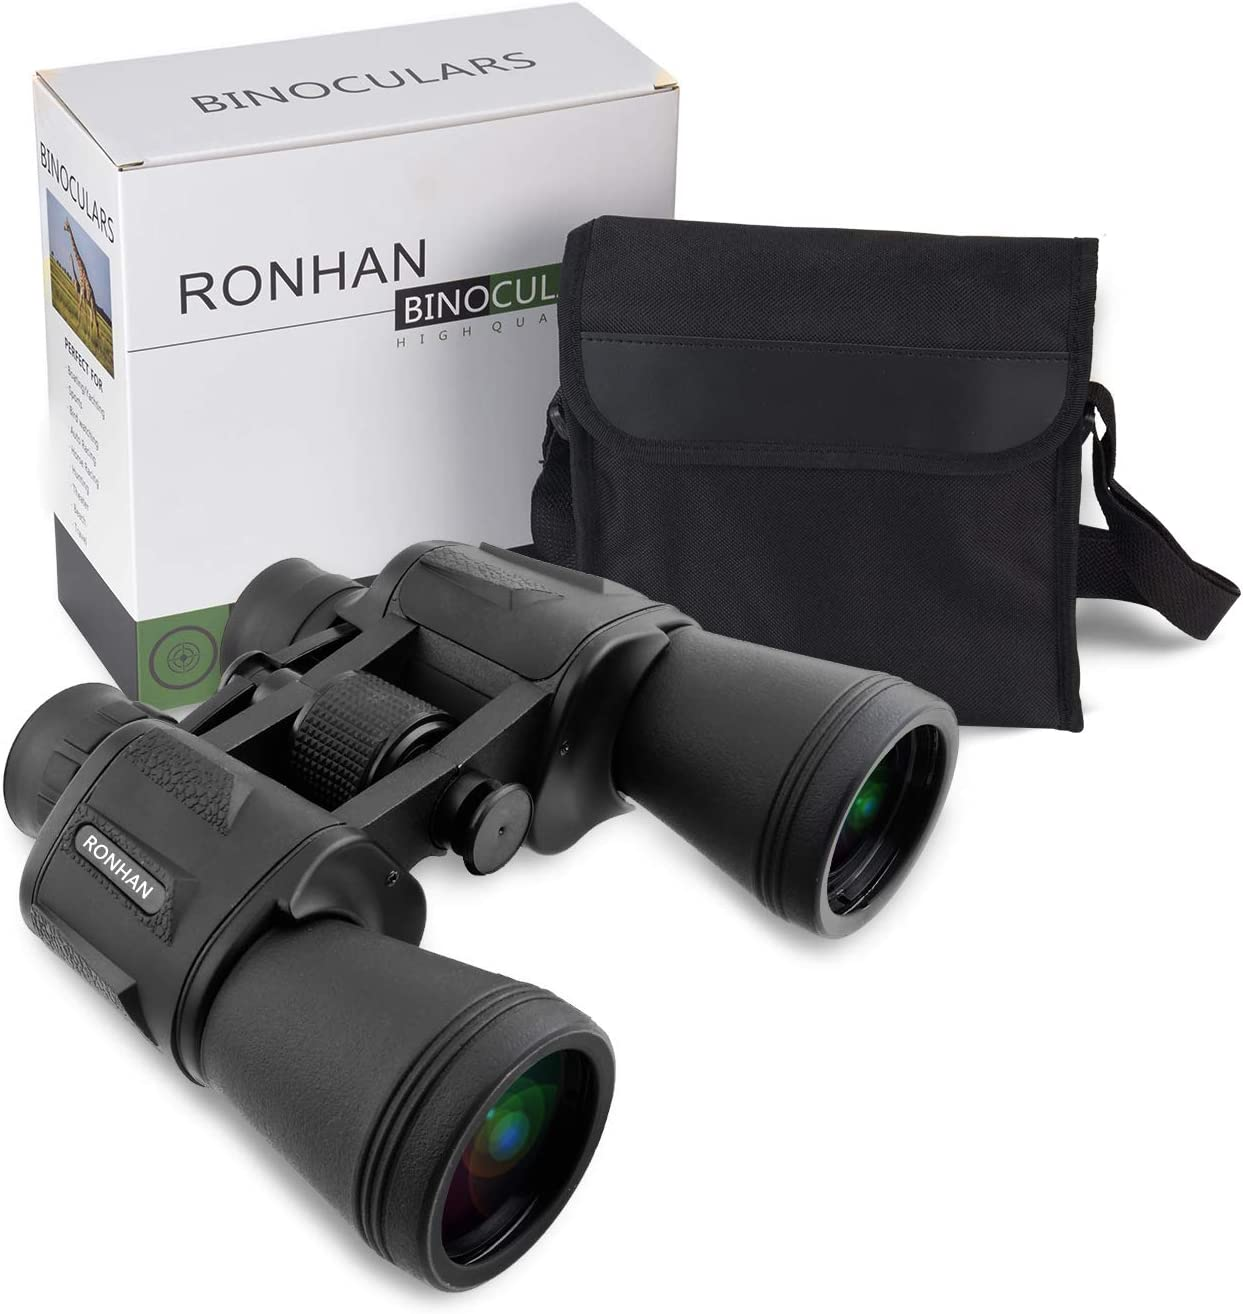 20×50 High Power Military Binoculars, Compact HD Professional Daily Waterproof Binoculars Telescope for Adults Bird Watching Travel Hunting Football-BAK4 Prism FMC Lens-with Case and Strap 20X50